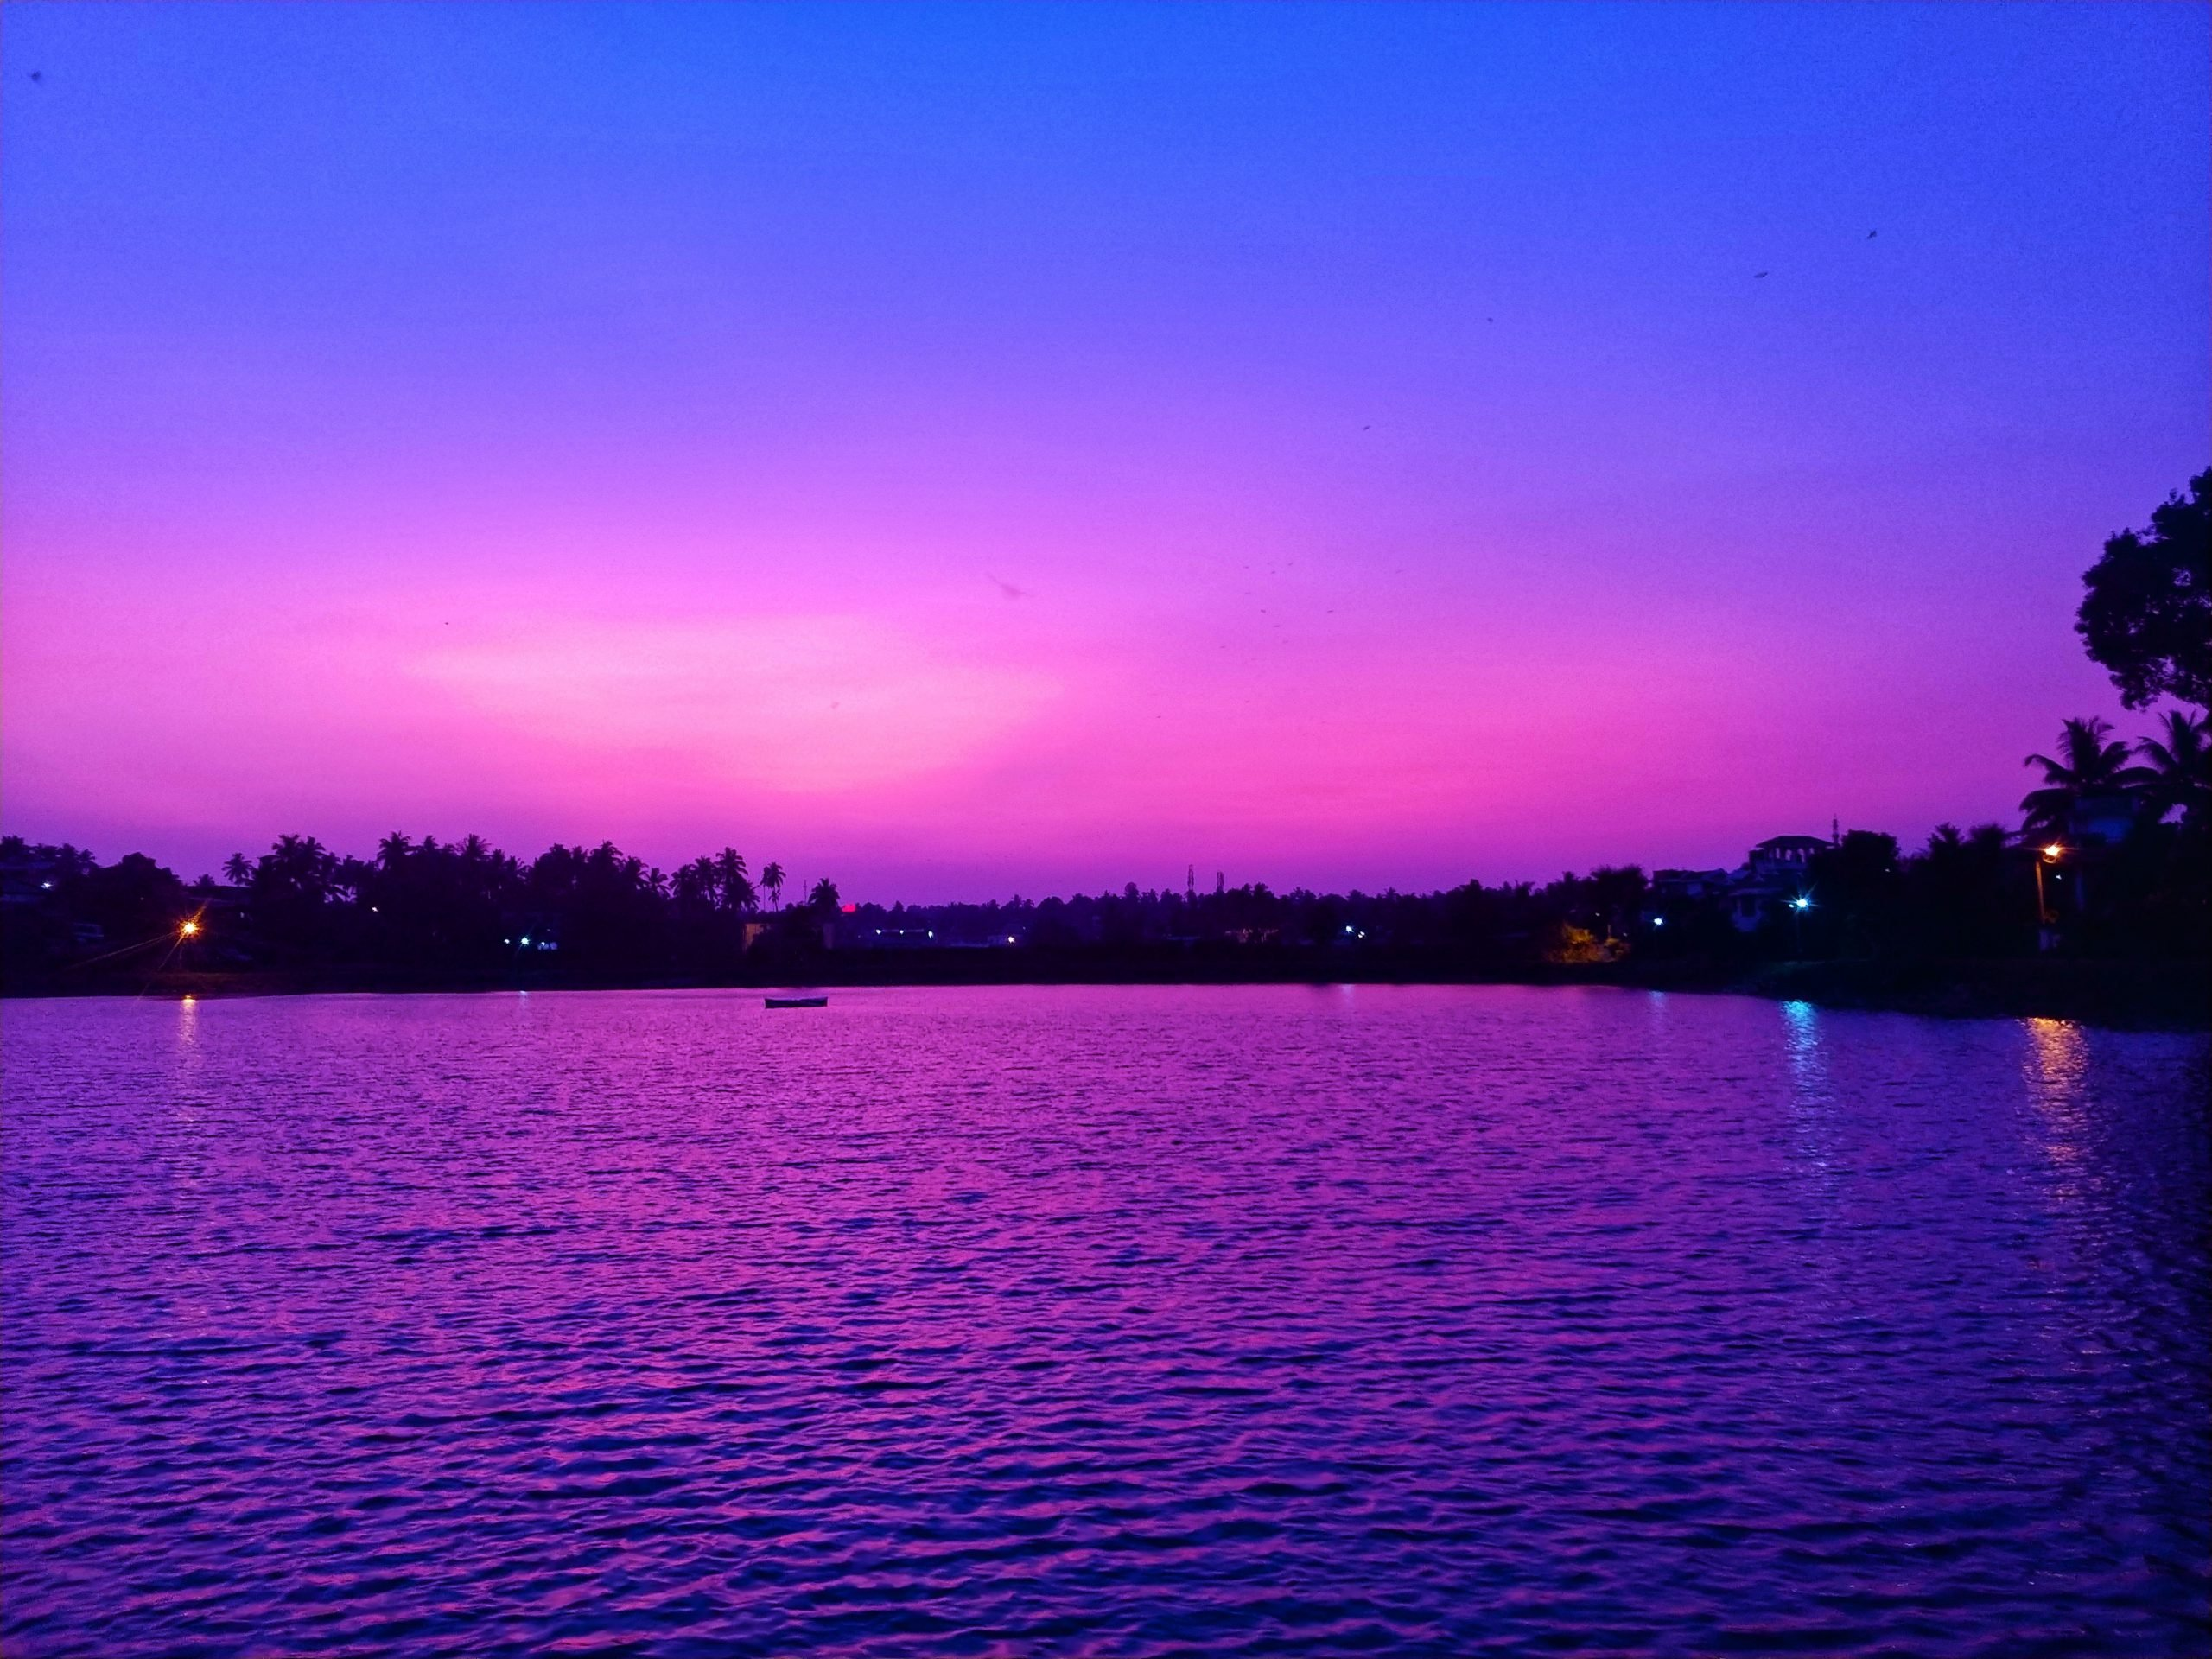 Pink sky and water